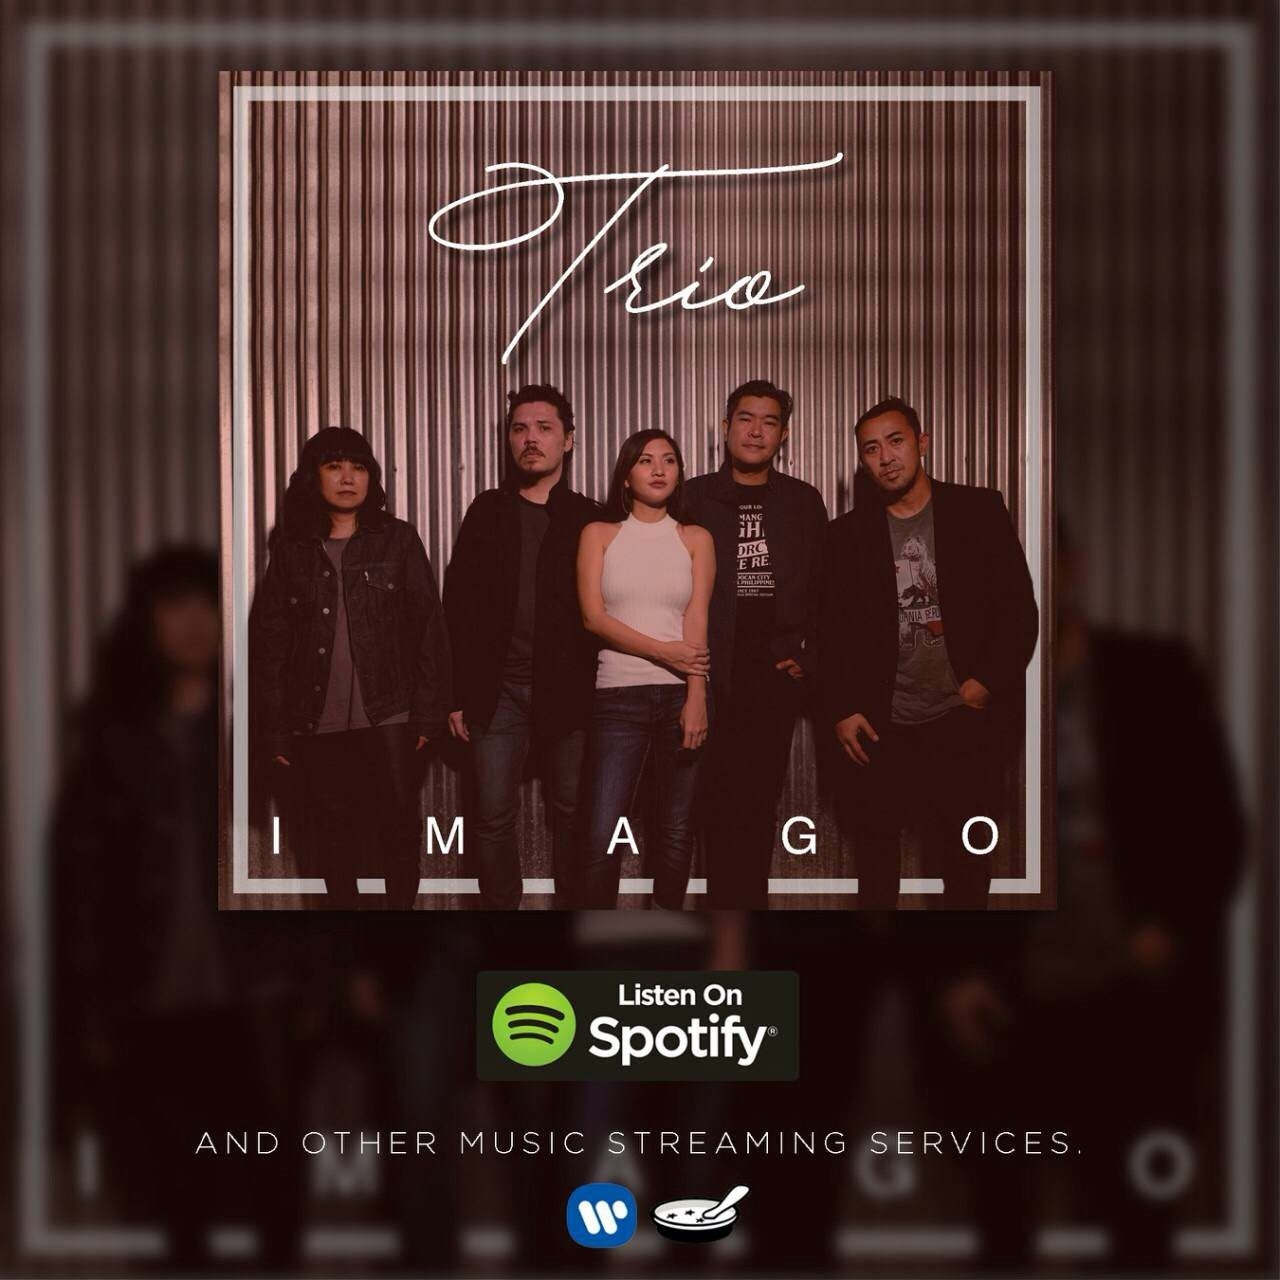 Imago releases new single and music video!